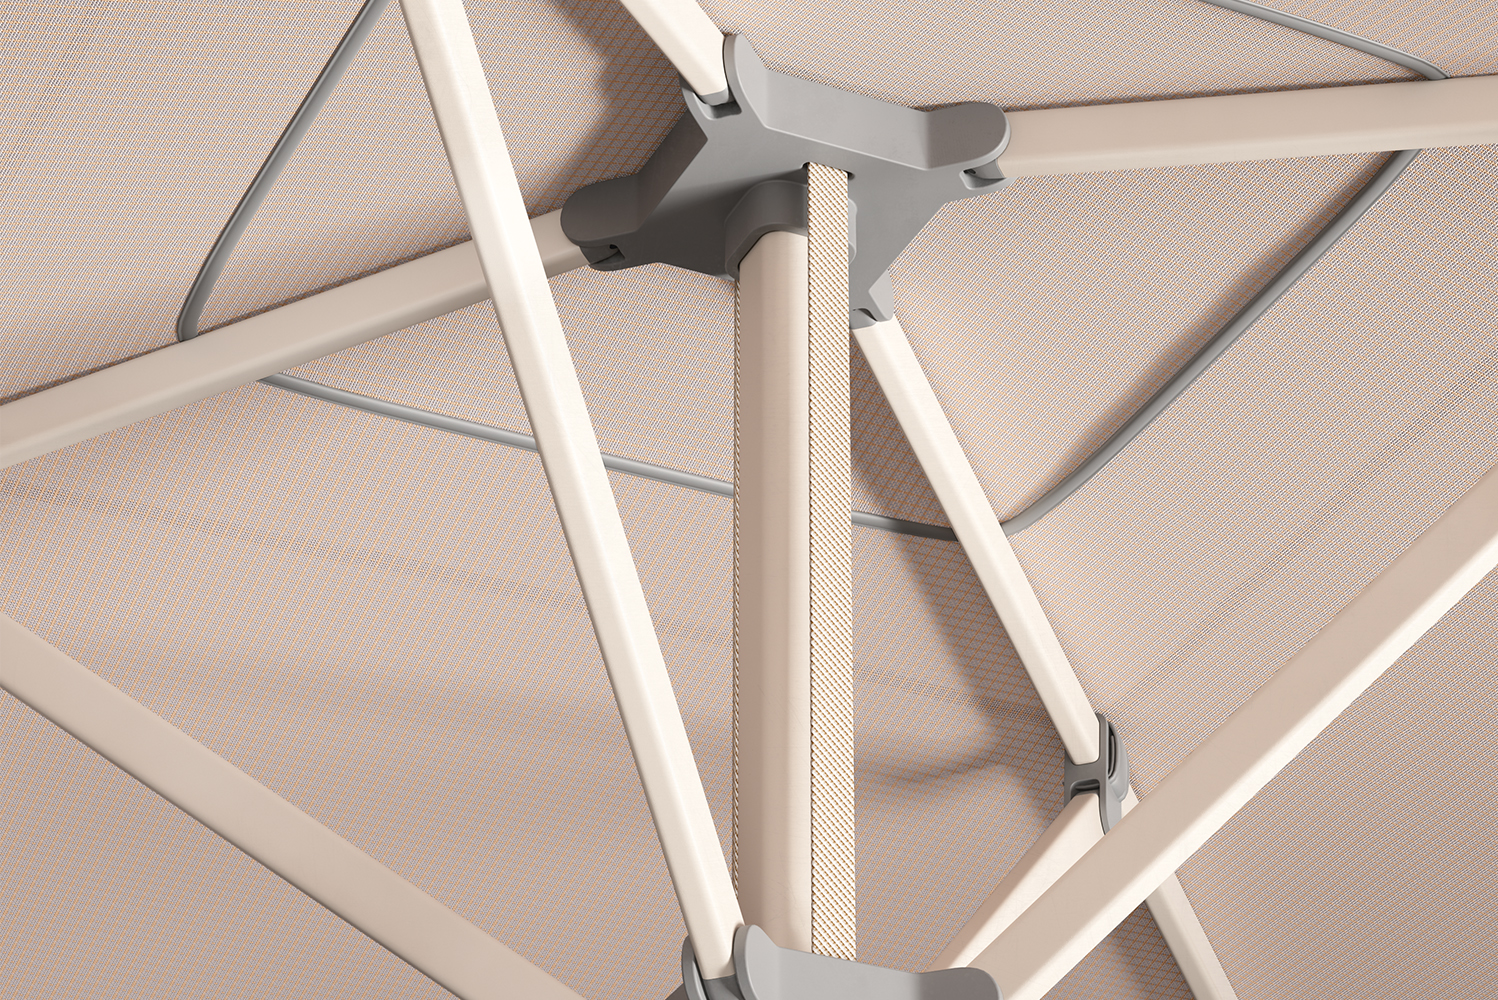 Kettal's own range of sunshade materials is used in combination with the brand's standard color palette.